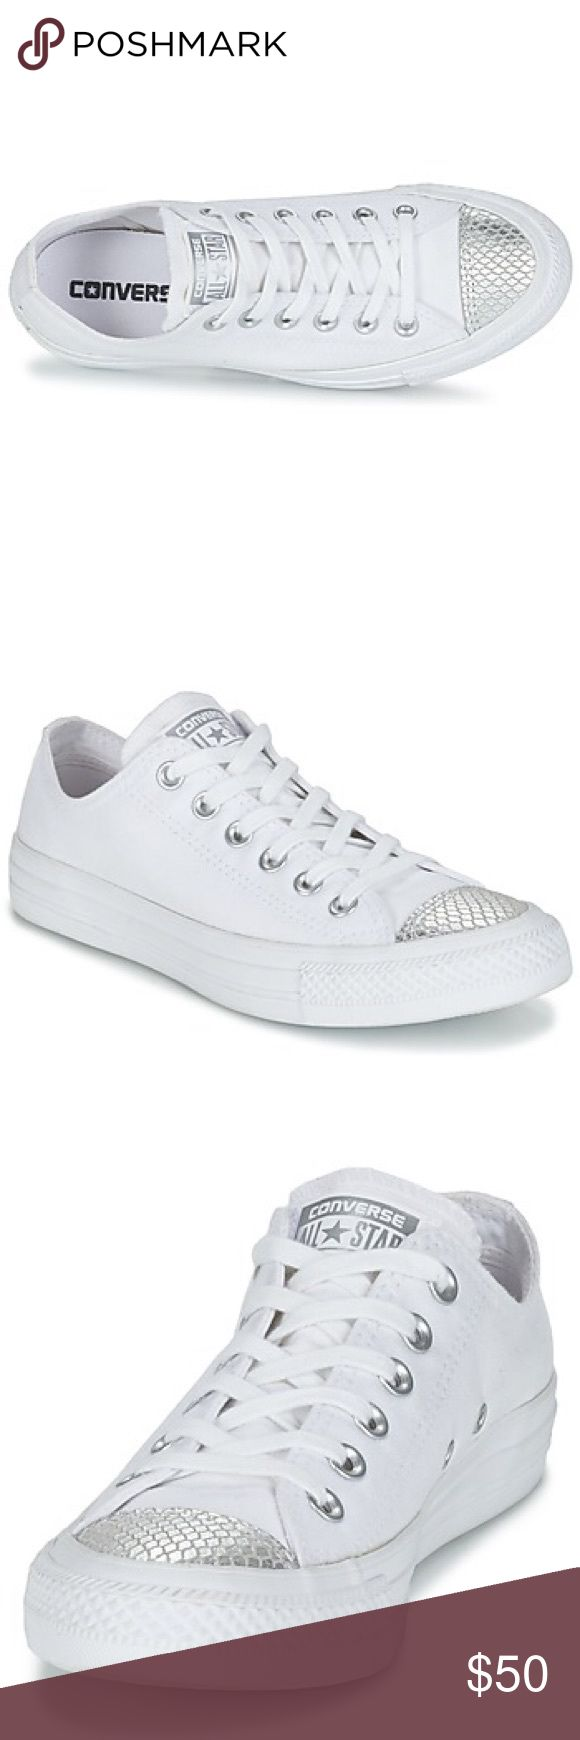 FLASH SALE  CONVERSE WOMENS METALLIC TOECAP New without box Converse Shoes Sneakers